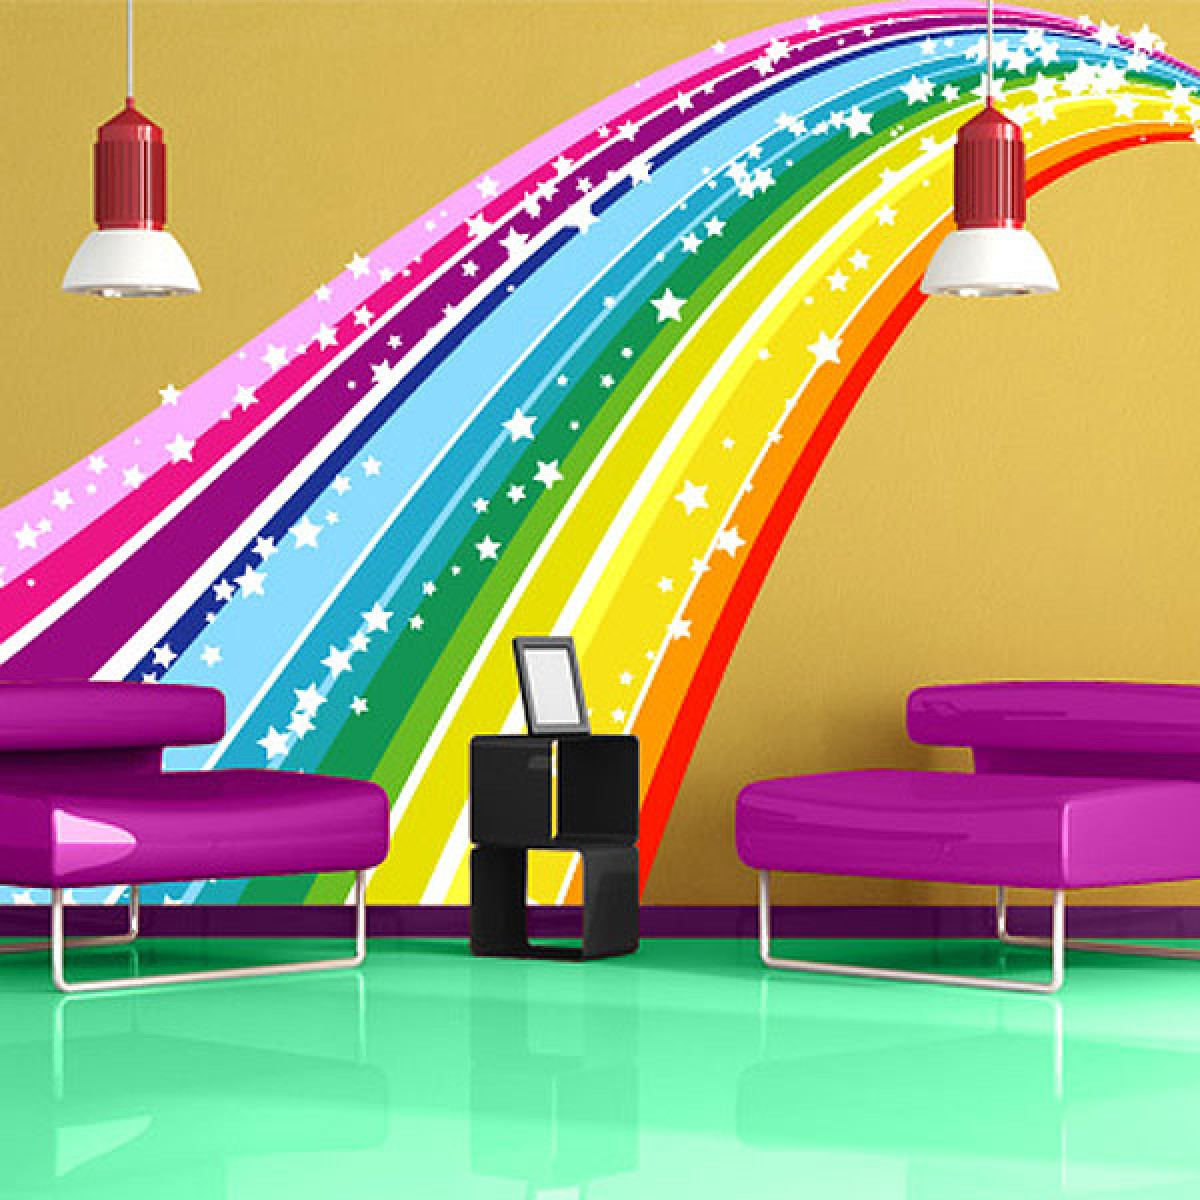 Colourful wall stickers gallery home wall decoration ideas heart wall stickers love wall decor rainbow bridge wall sticker amipublicfo gallery amipublicfo Images